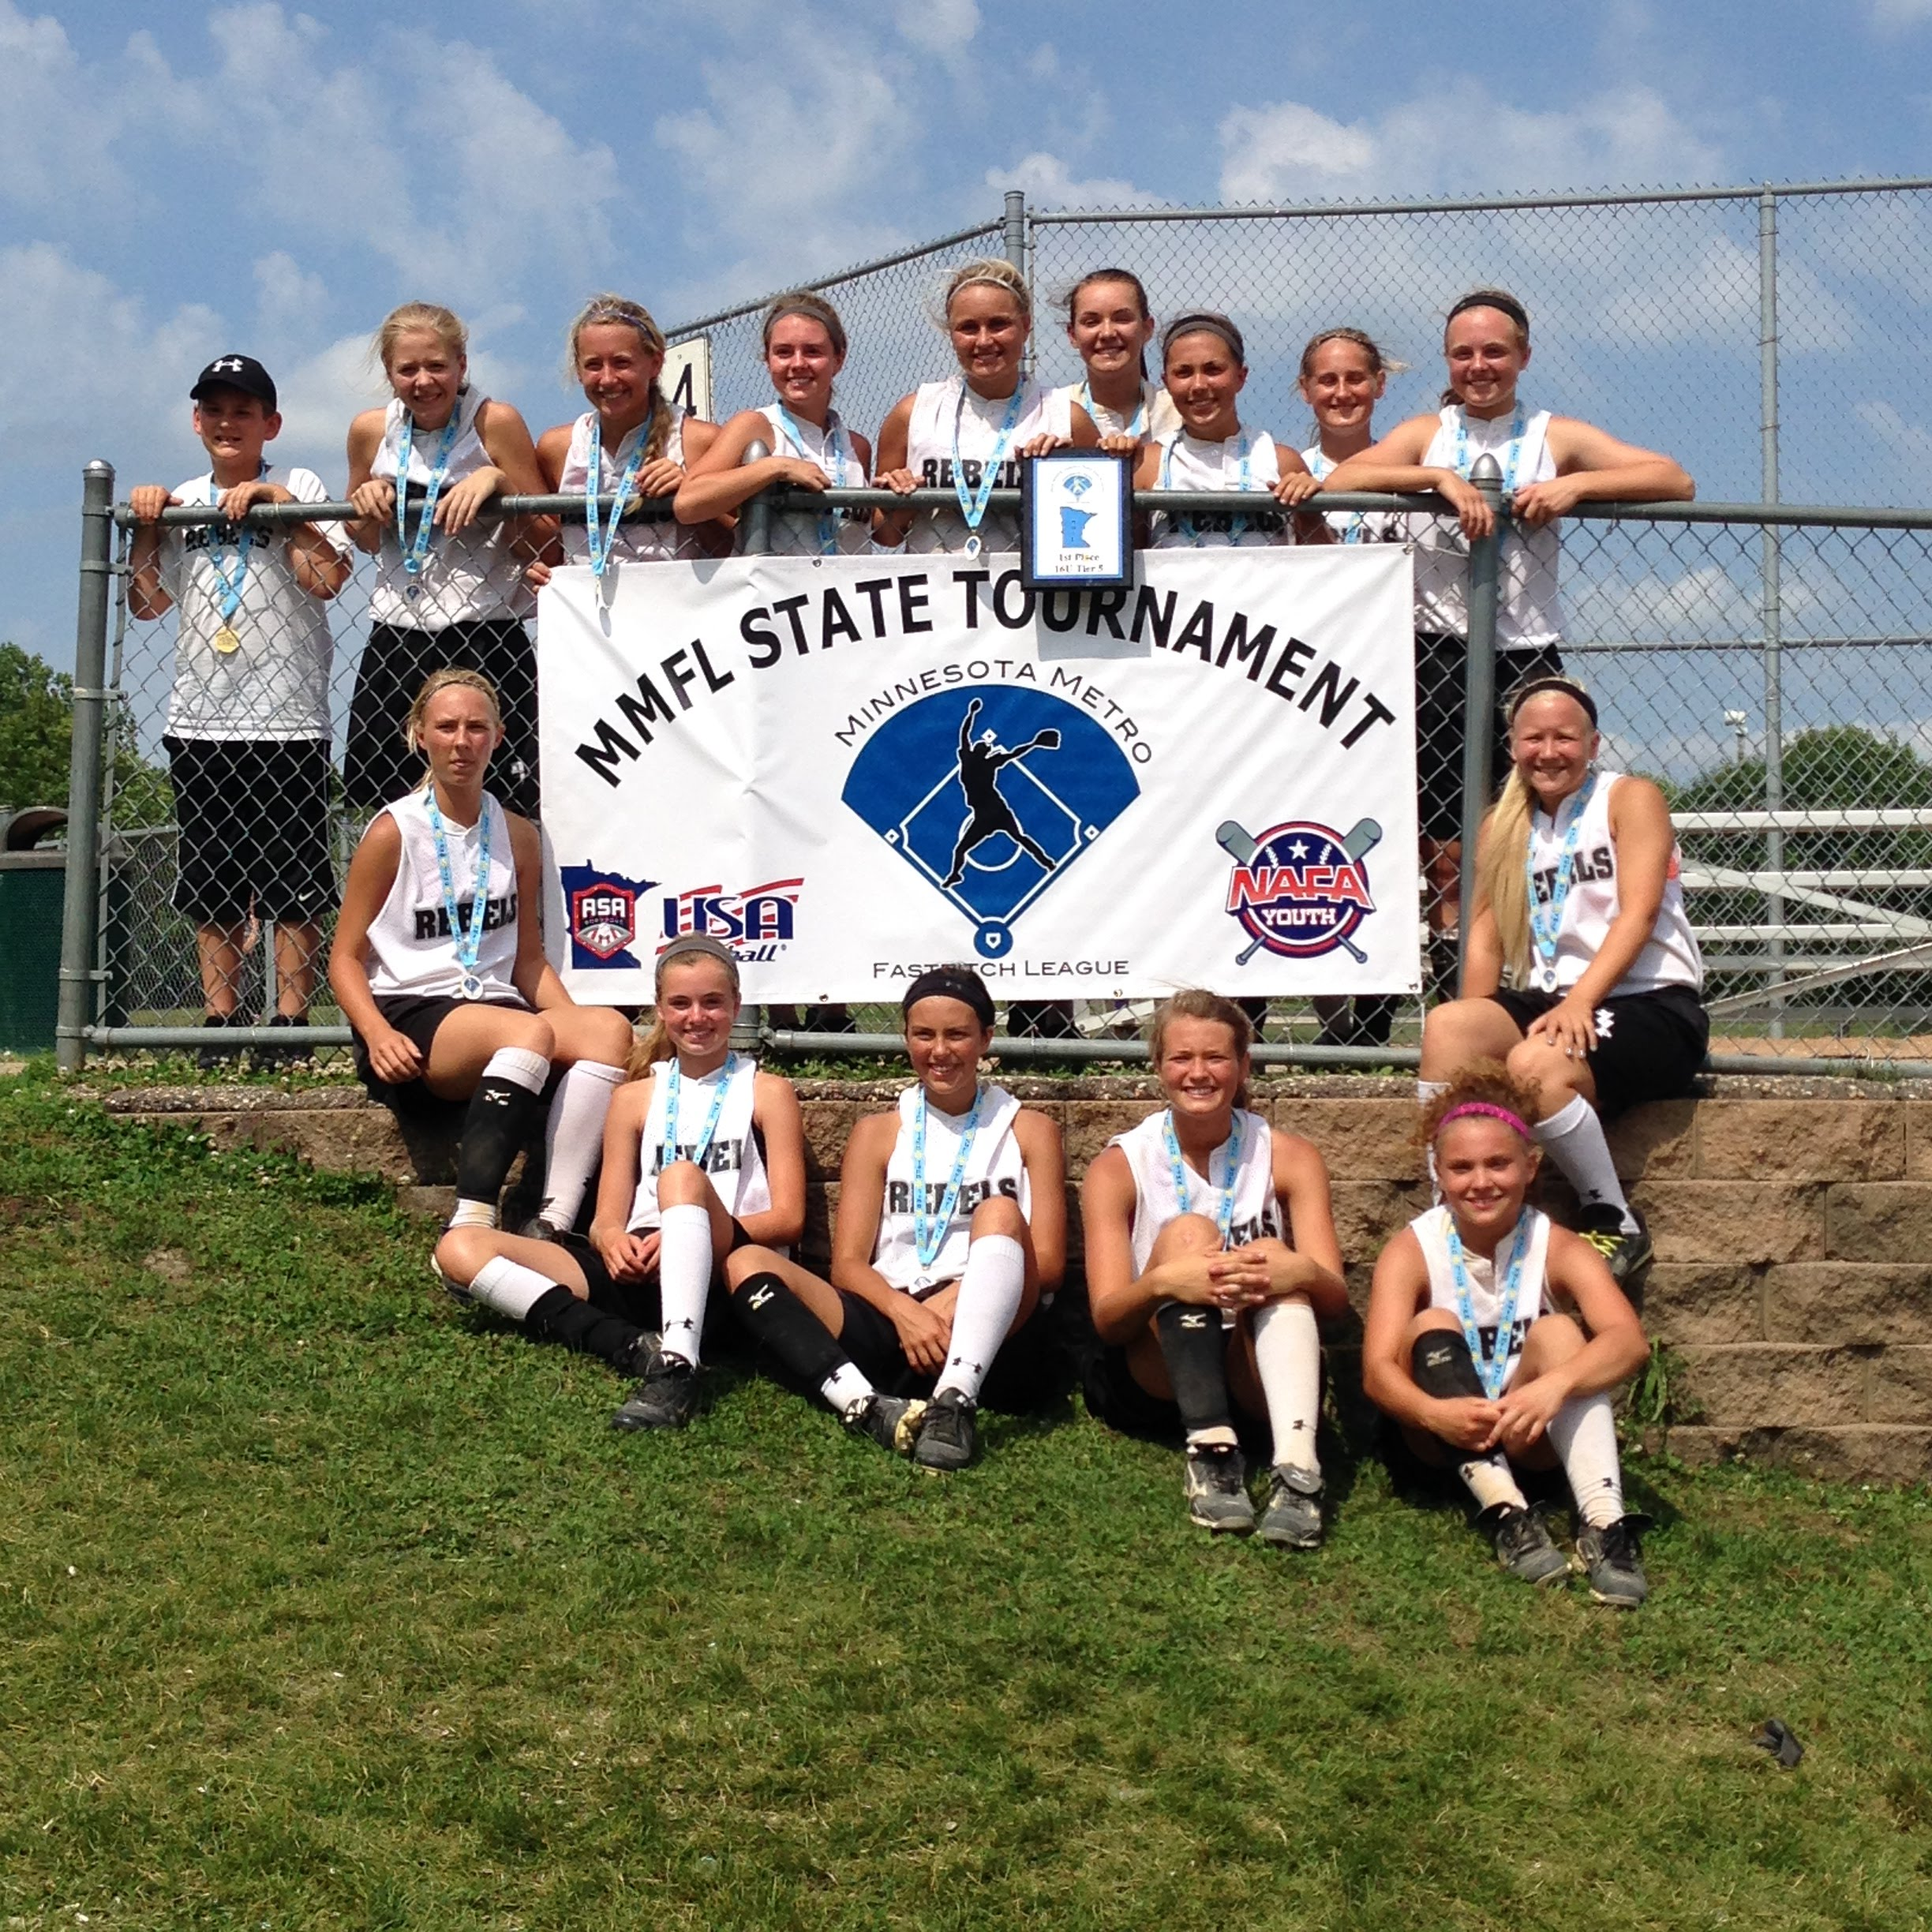 glyndon girls View the schedule, scores, league standings, rankings, roster and articles for the dilworth-glyndon-felton rebels softball team on maxpreps.